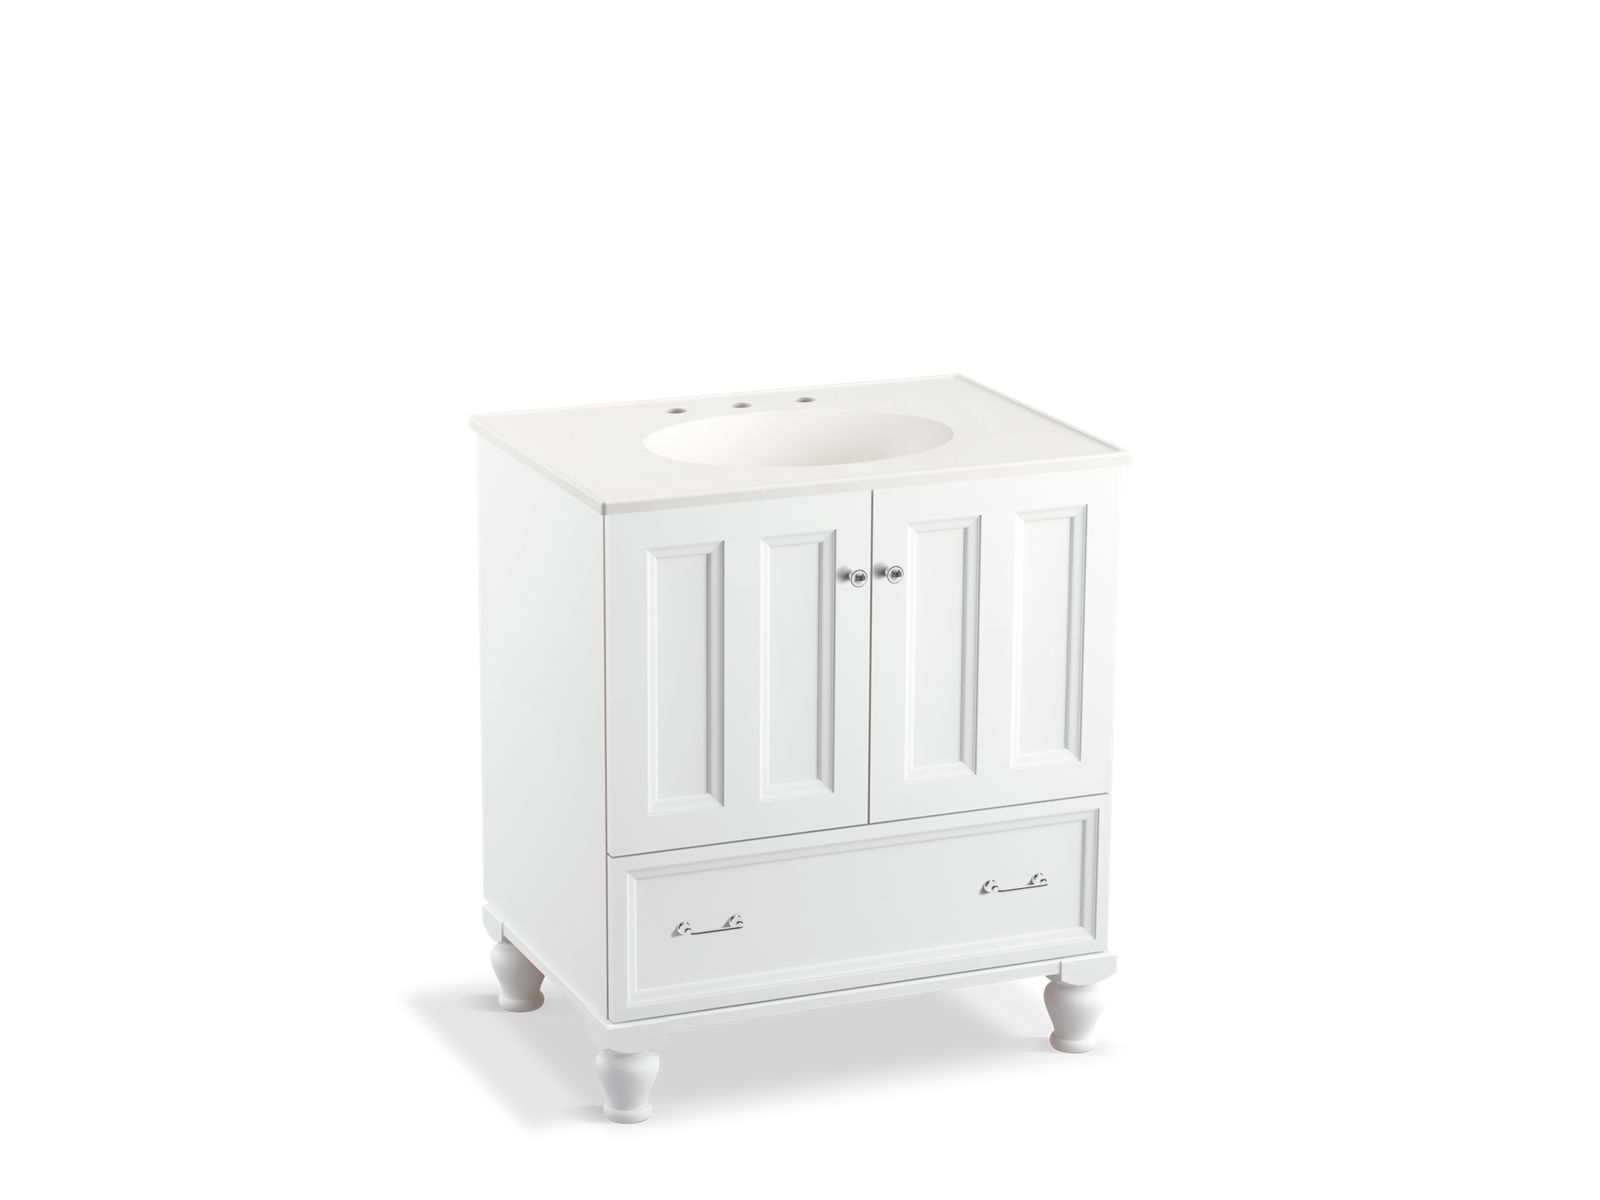 30 Vanity With Drawers K 99516 Lg Damask 30 Inch Vanity With Legs 2 Doors 1 Drawer